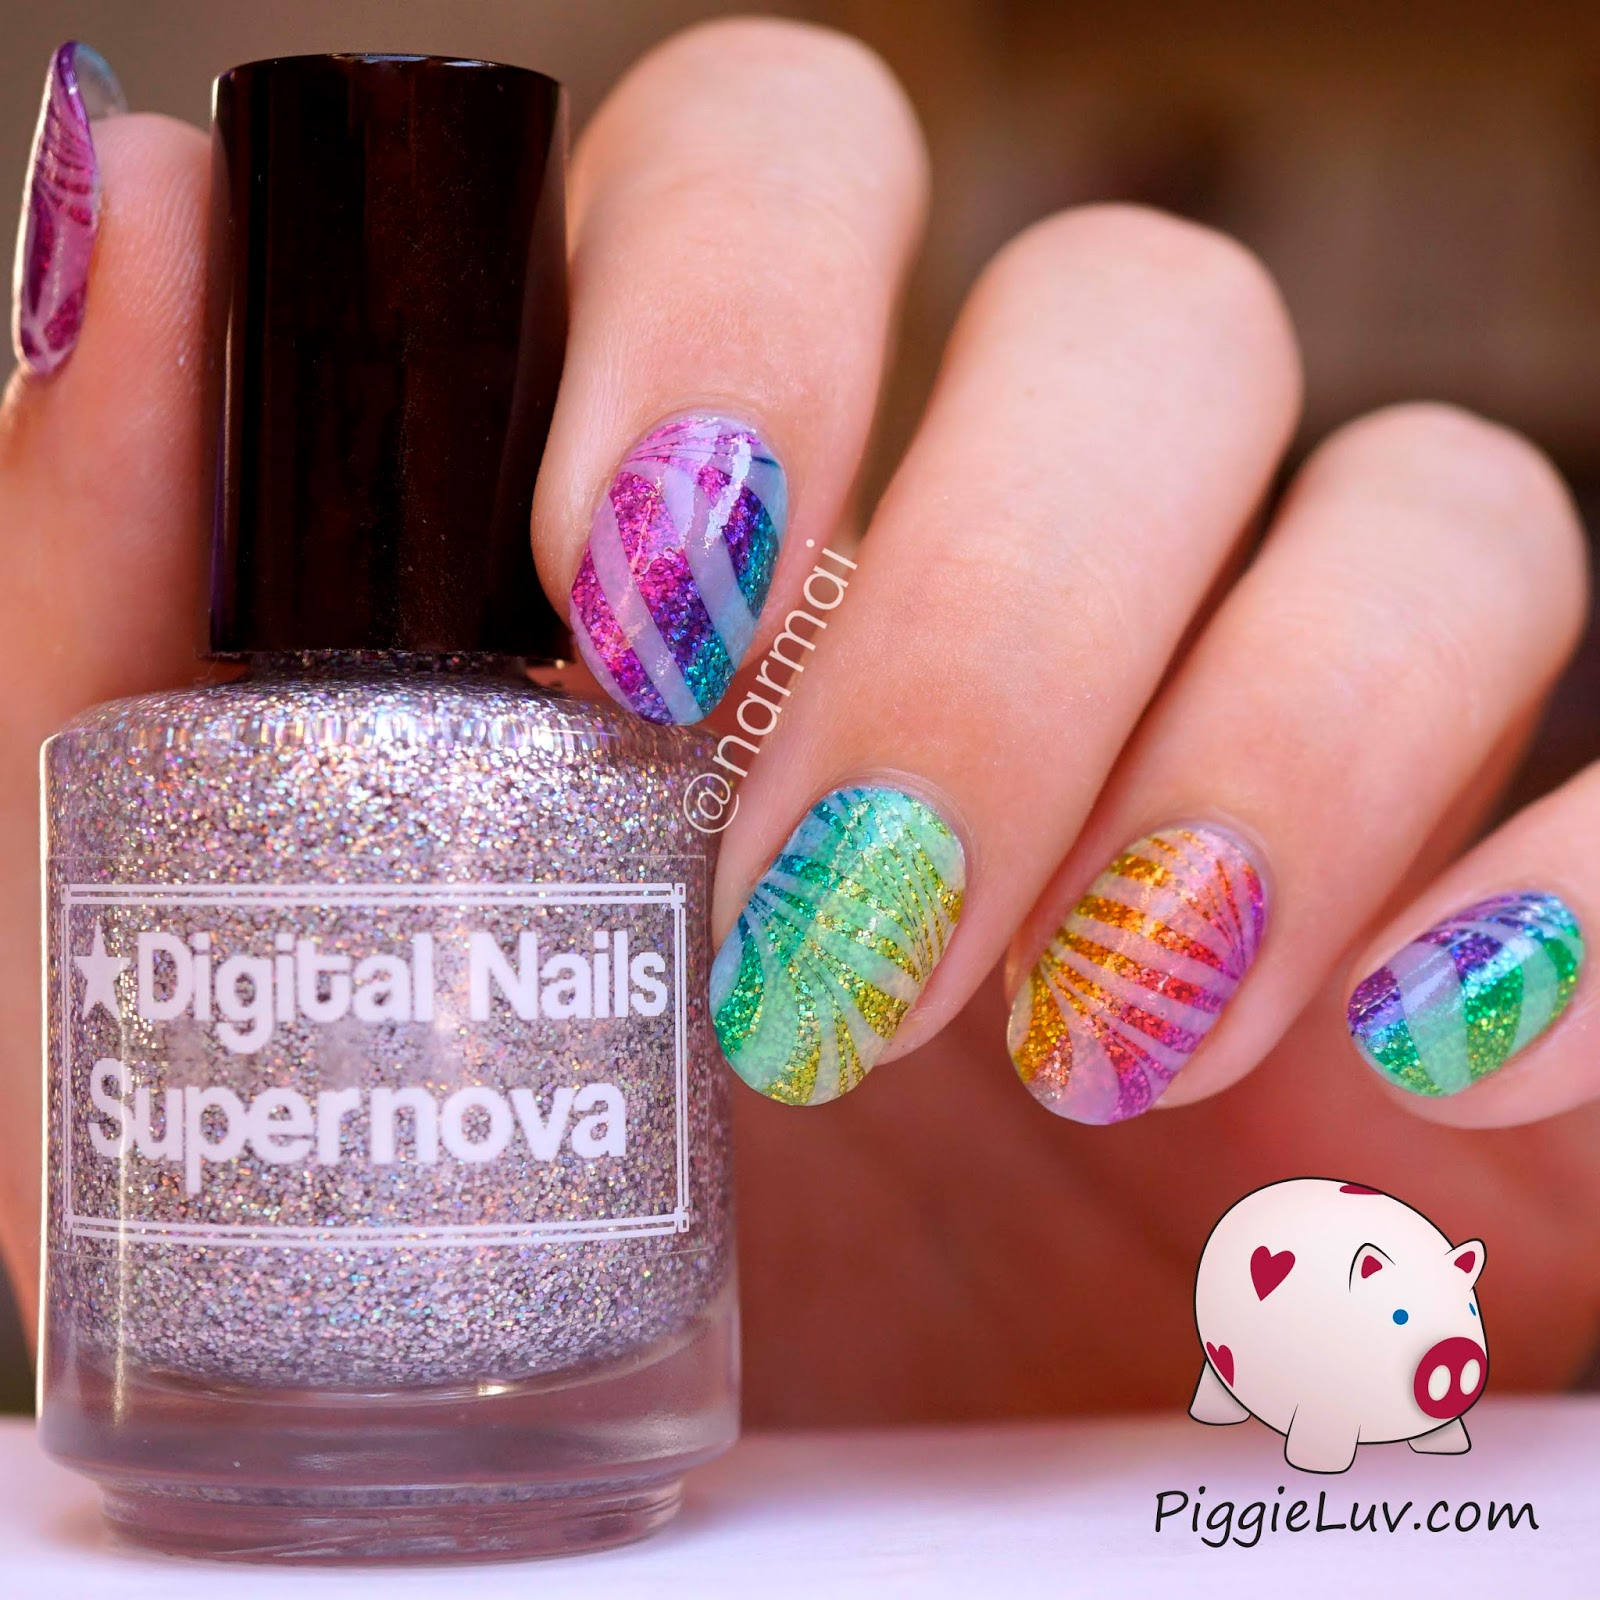 Piggieluv Opi Color Paints Glitter Gradient With Glowy Watermarble